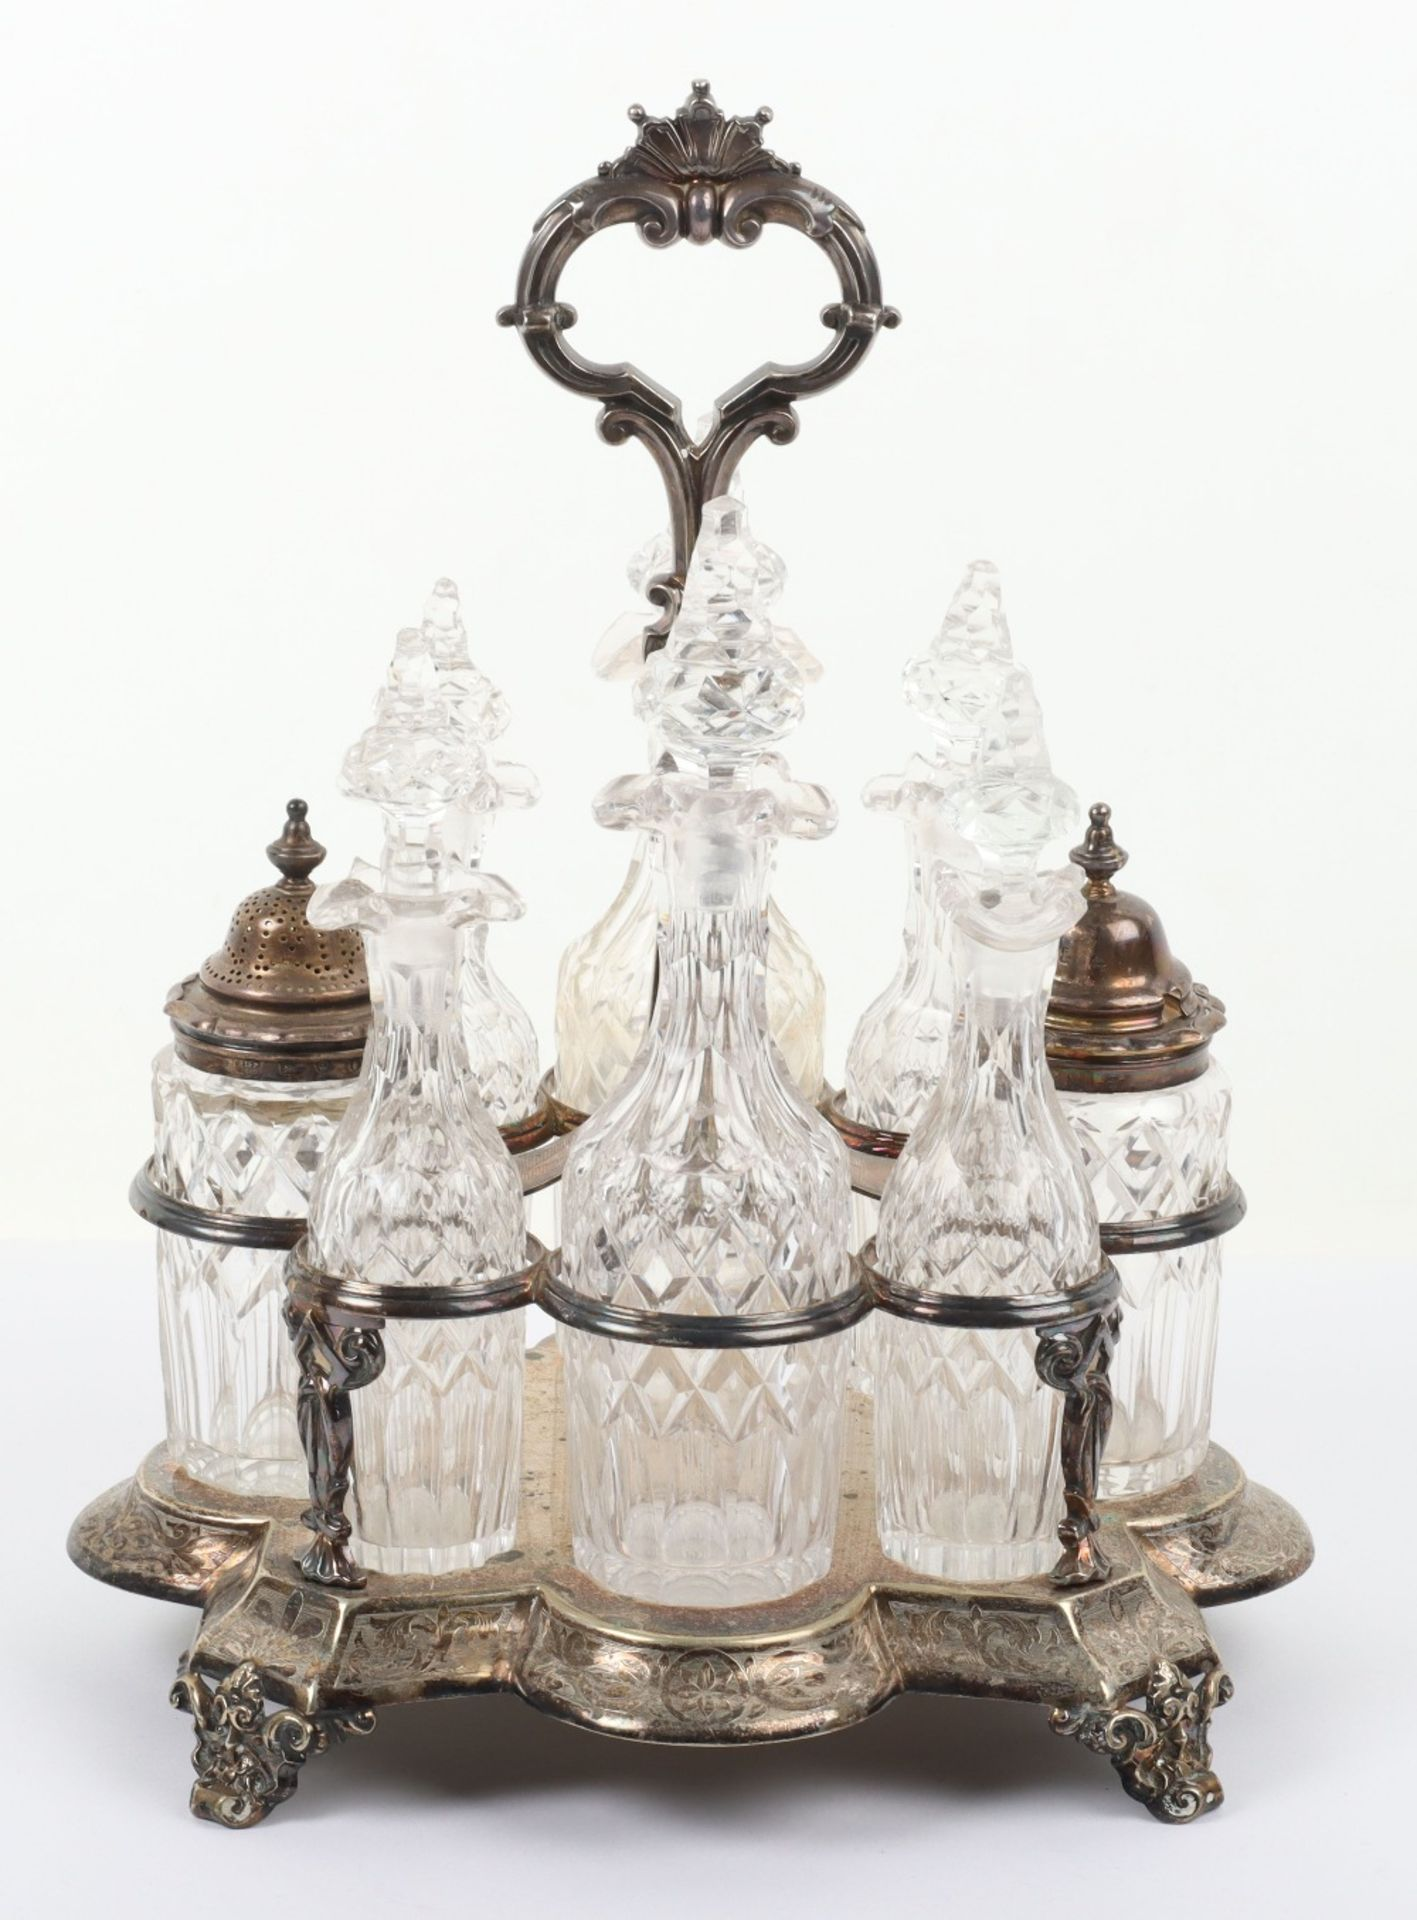 A Victorian silver and silver plated glass cruet set - Image 3 of 23